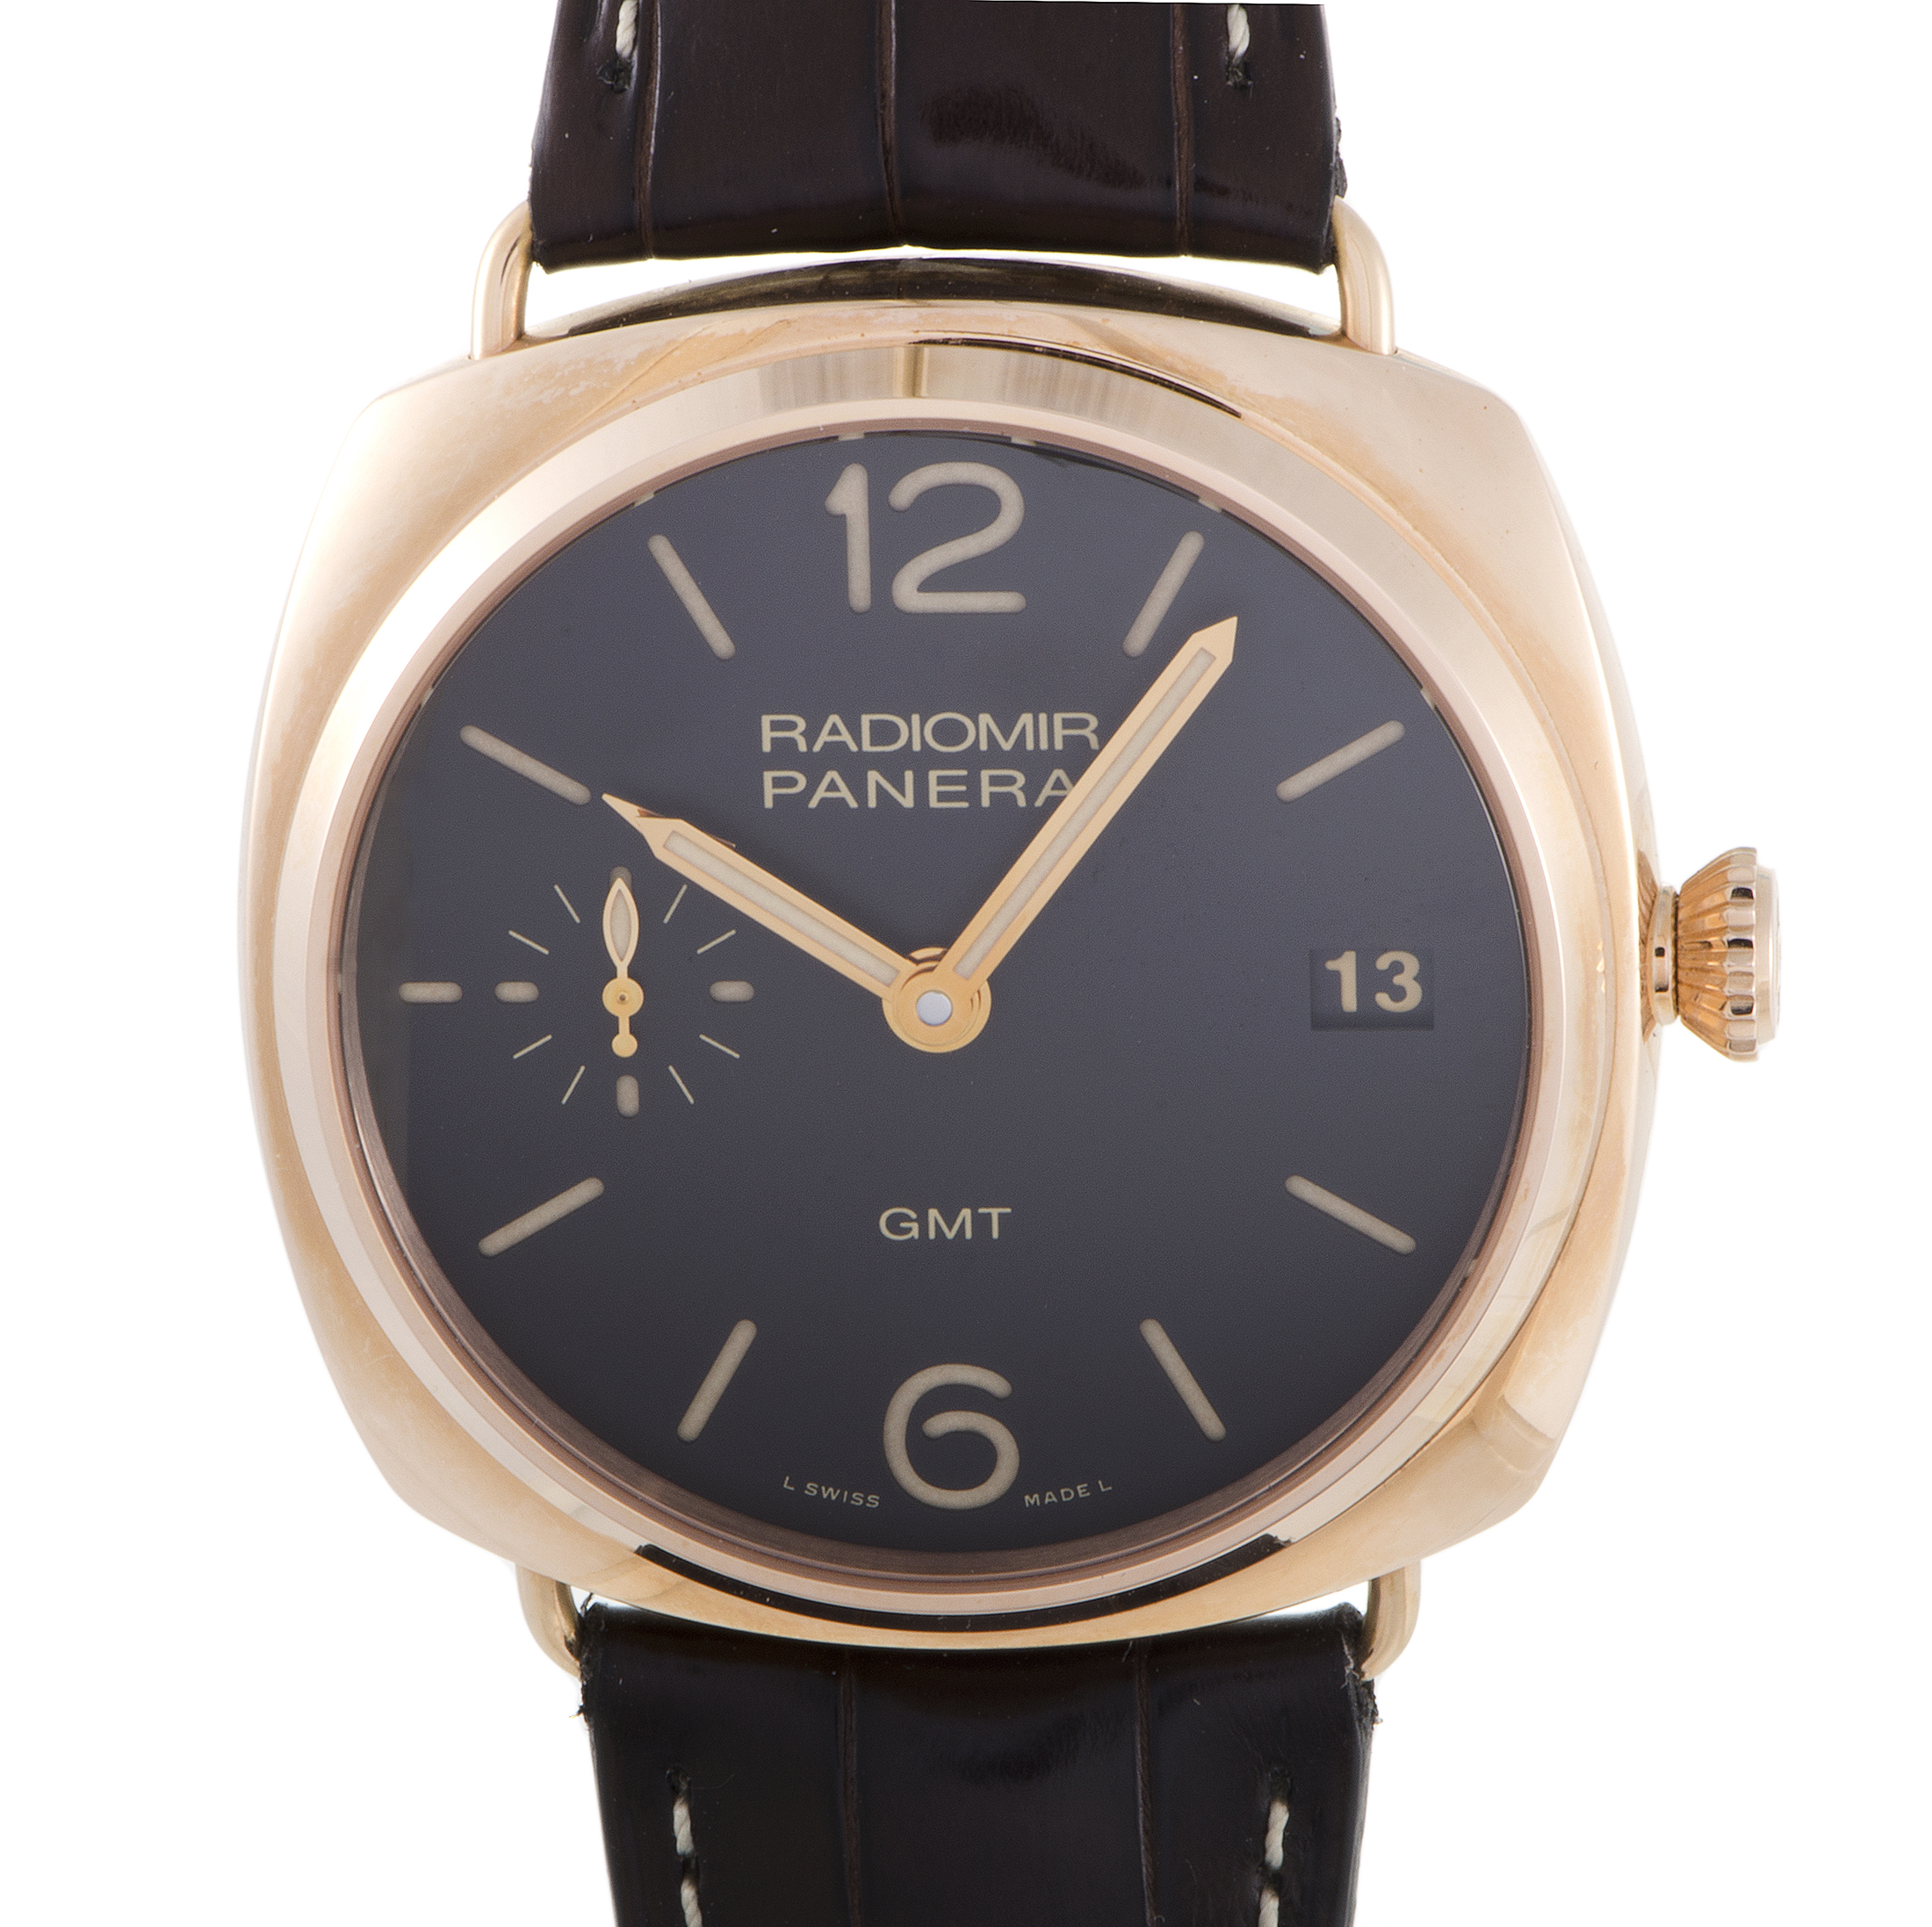 Radiomir 3 Days GMT Oro Rosso Manually Wound Watch PAM00421